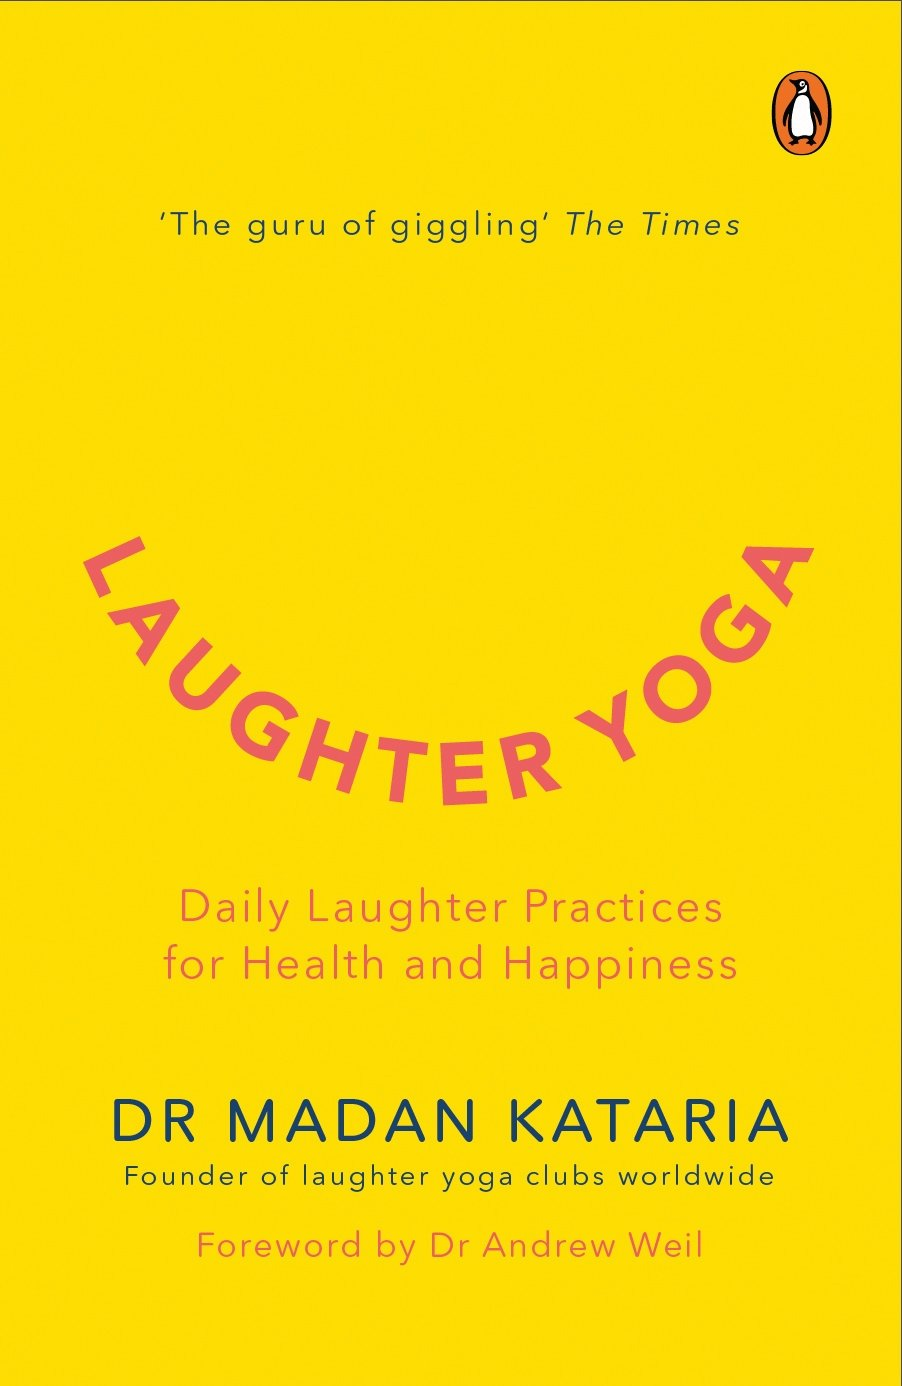 Amazon.com: Laughter Yoga (9780143441205): madan kataria: Books